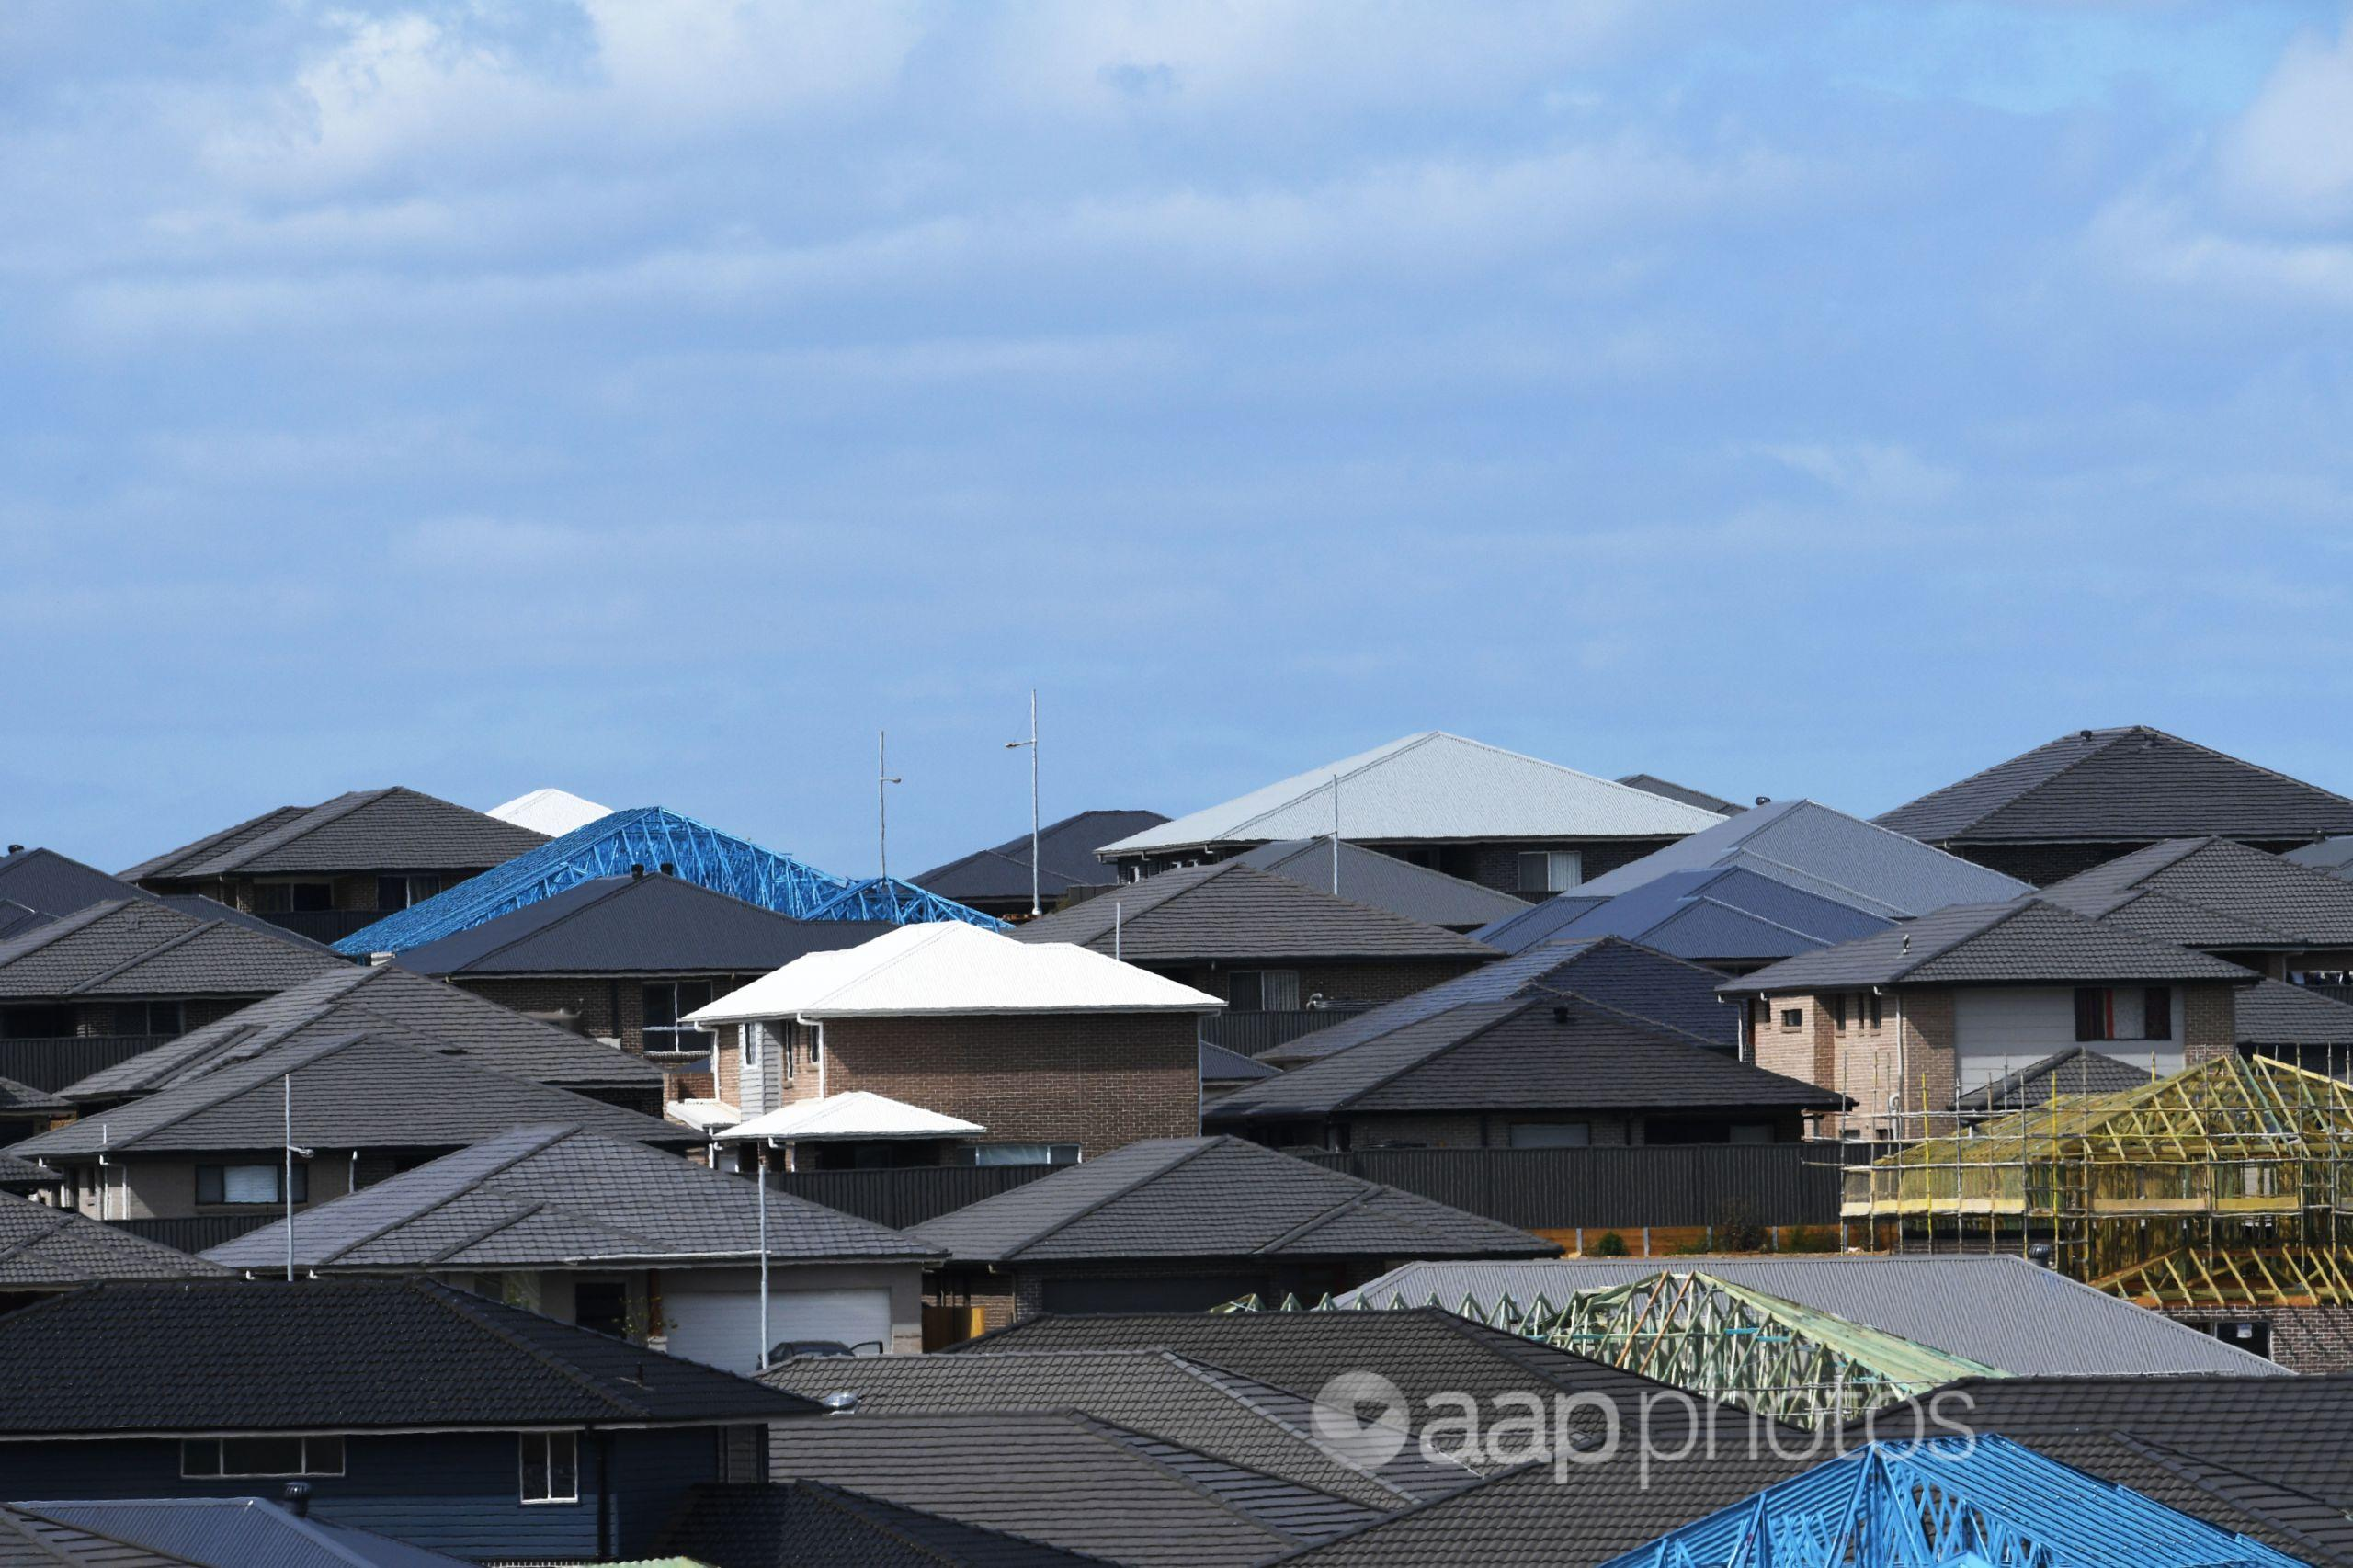 View across roofs with some under construction